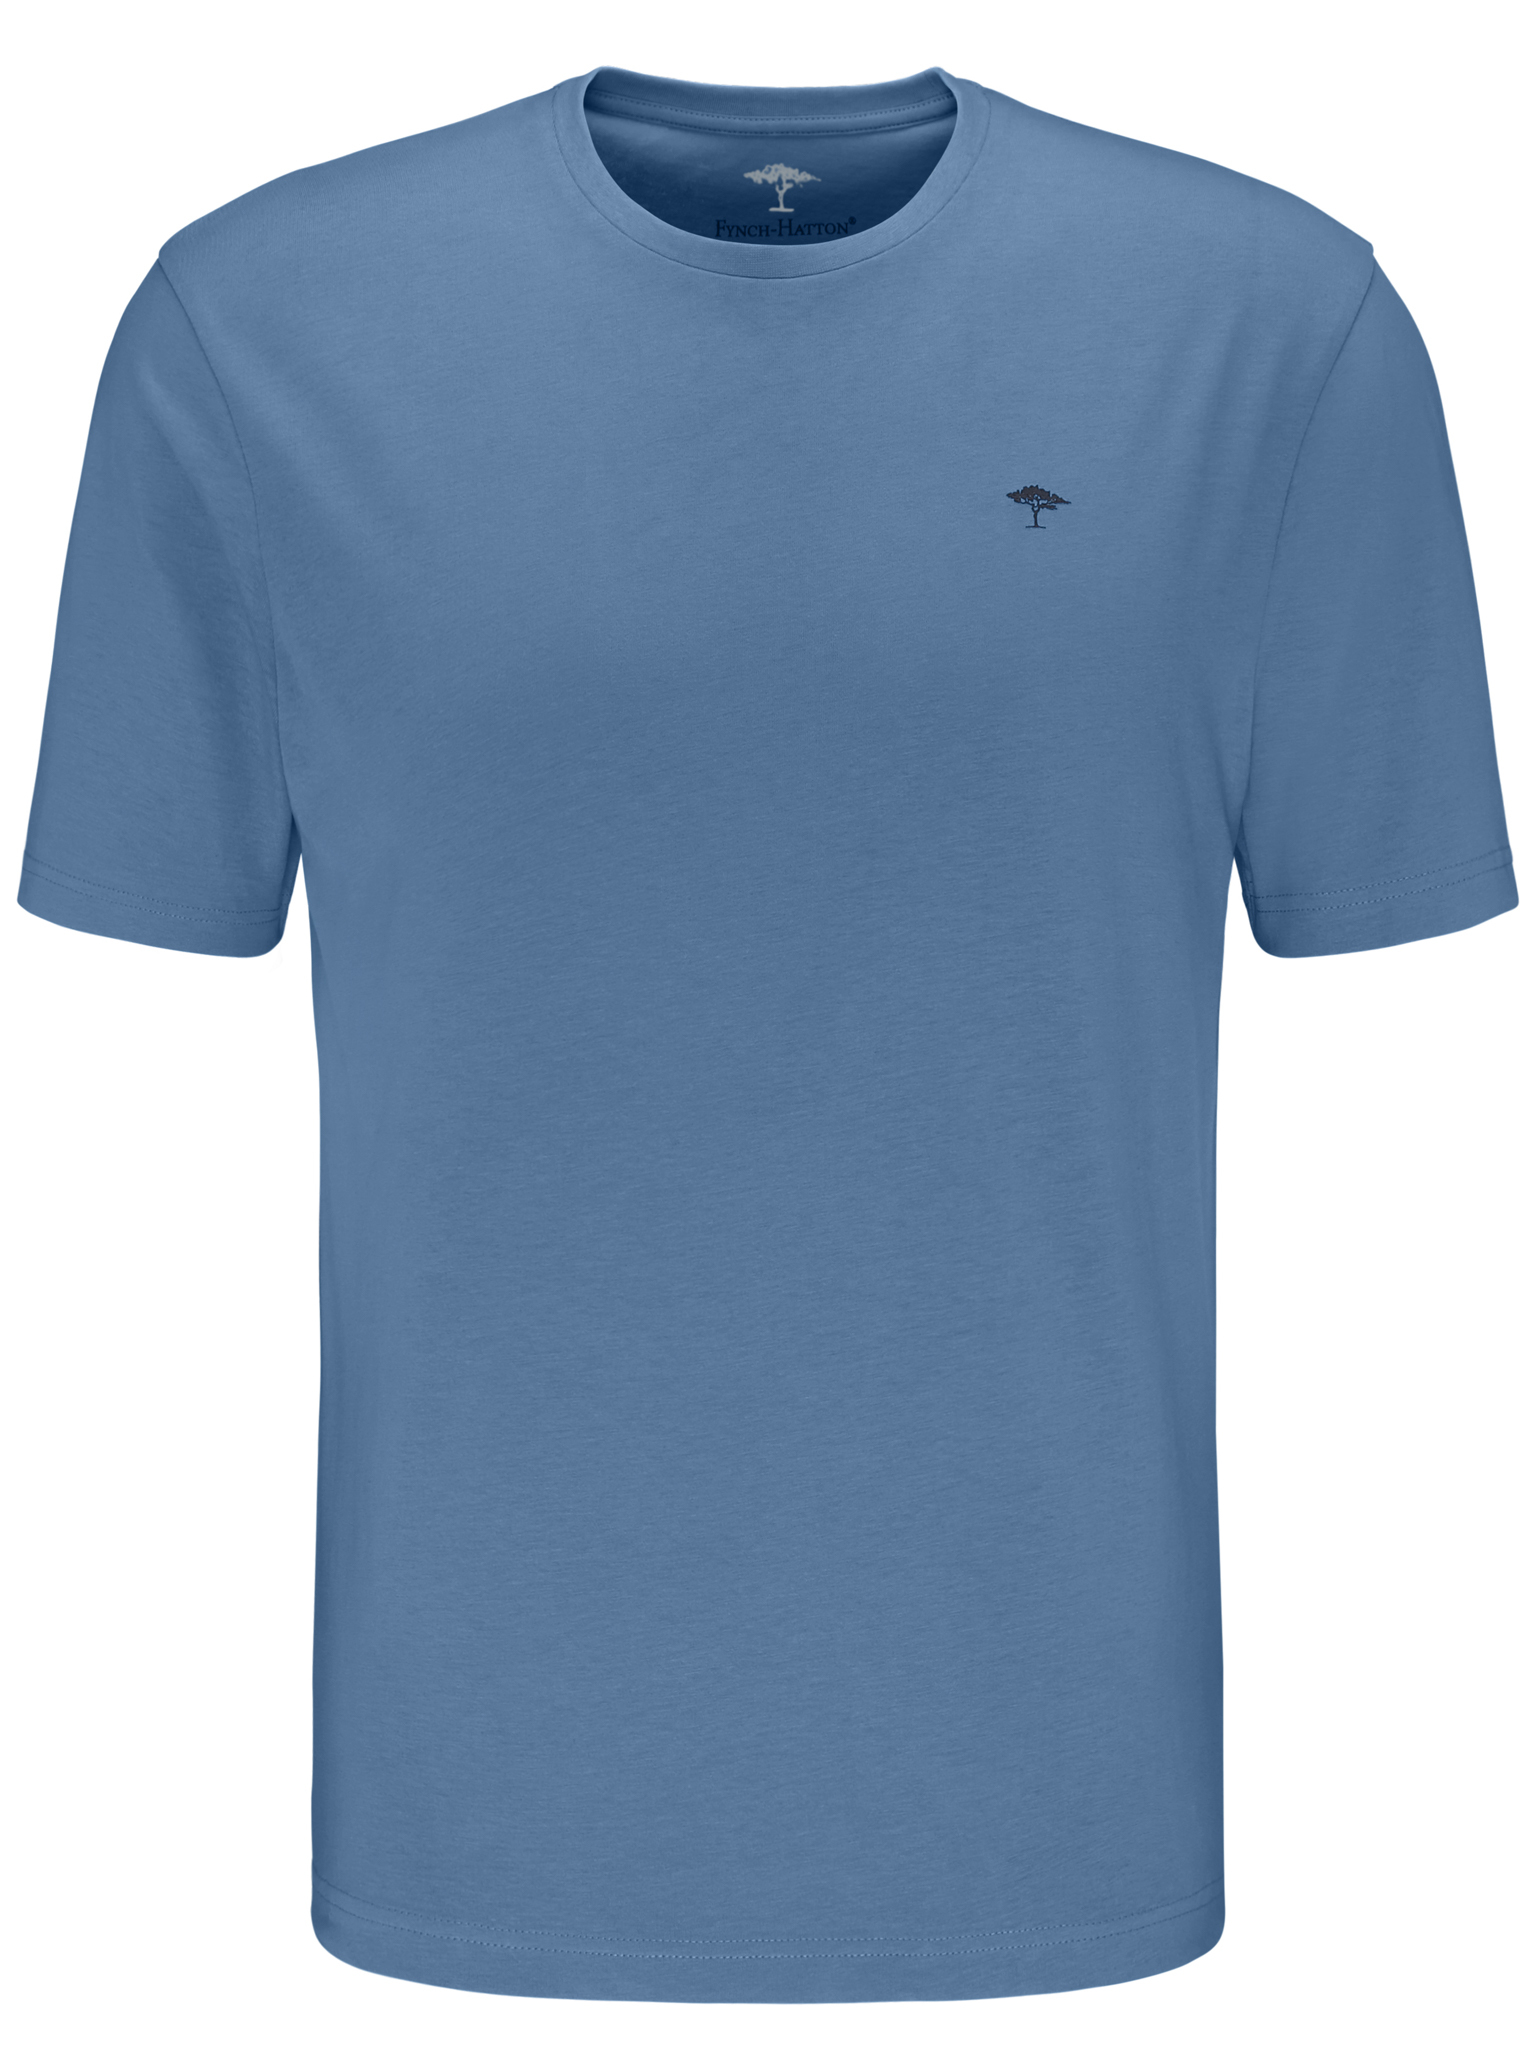 Fynch Hatton cotton tee shirt in blue